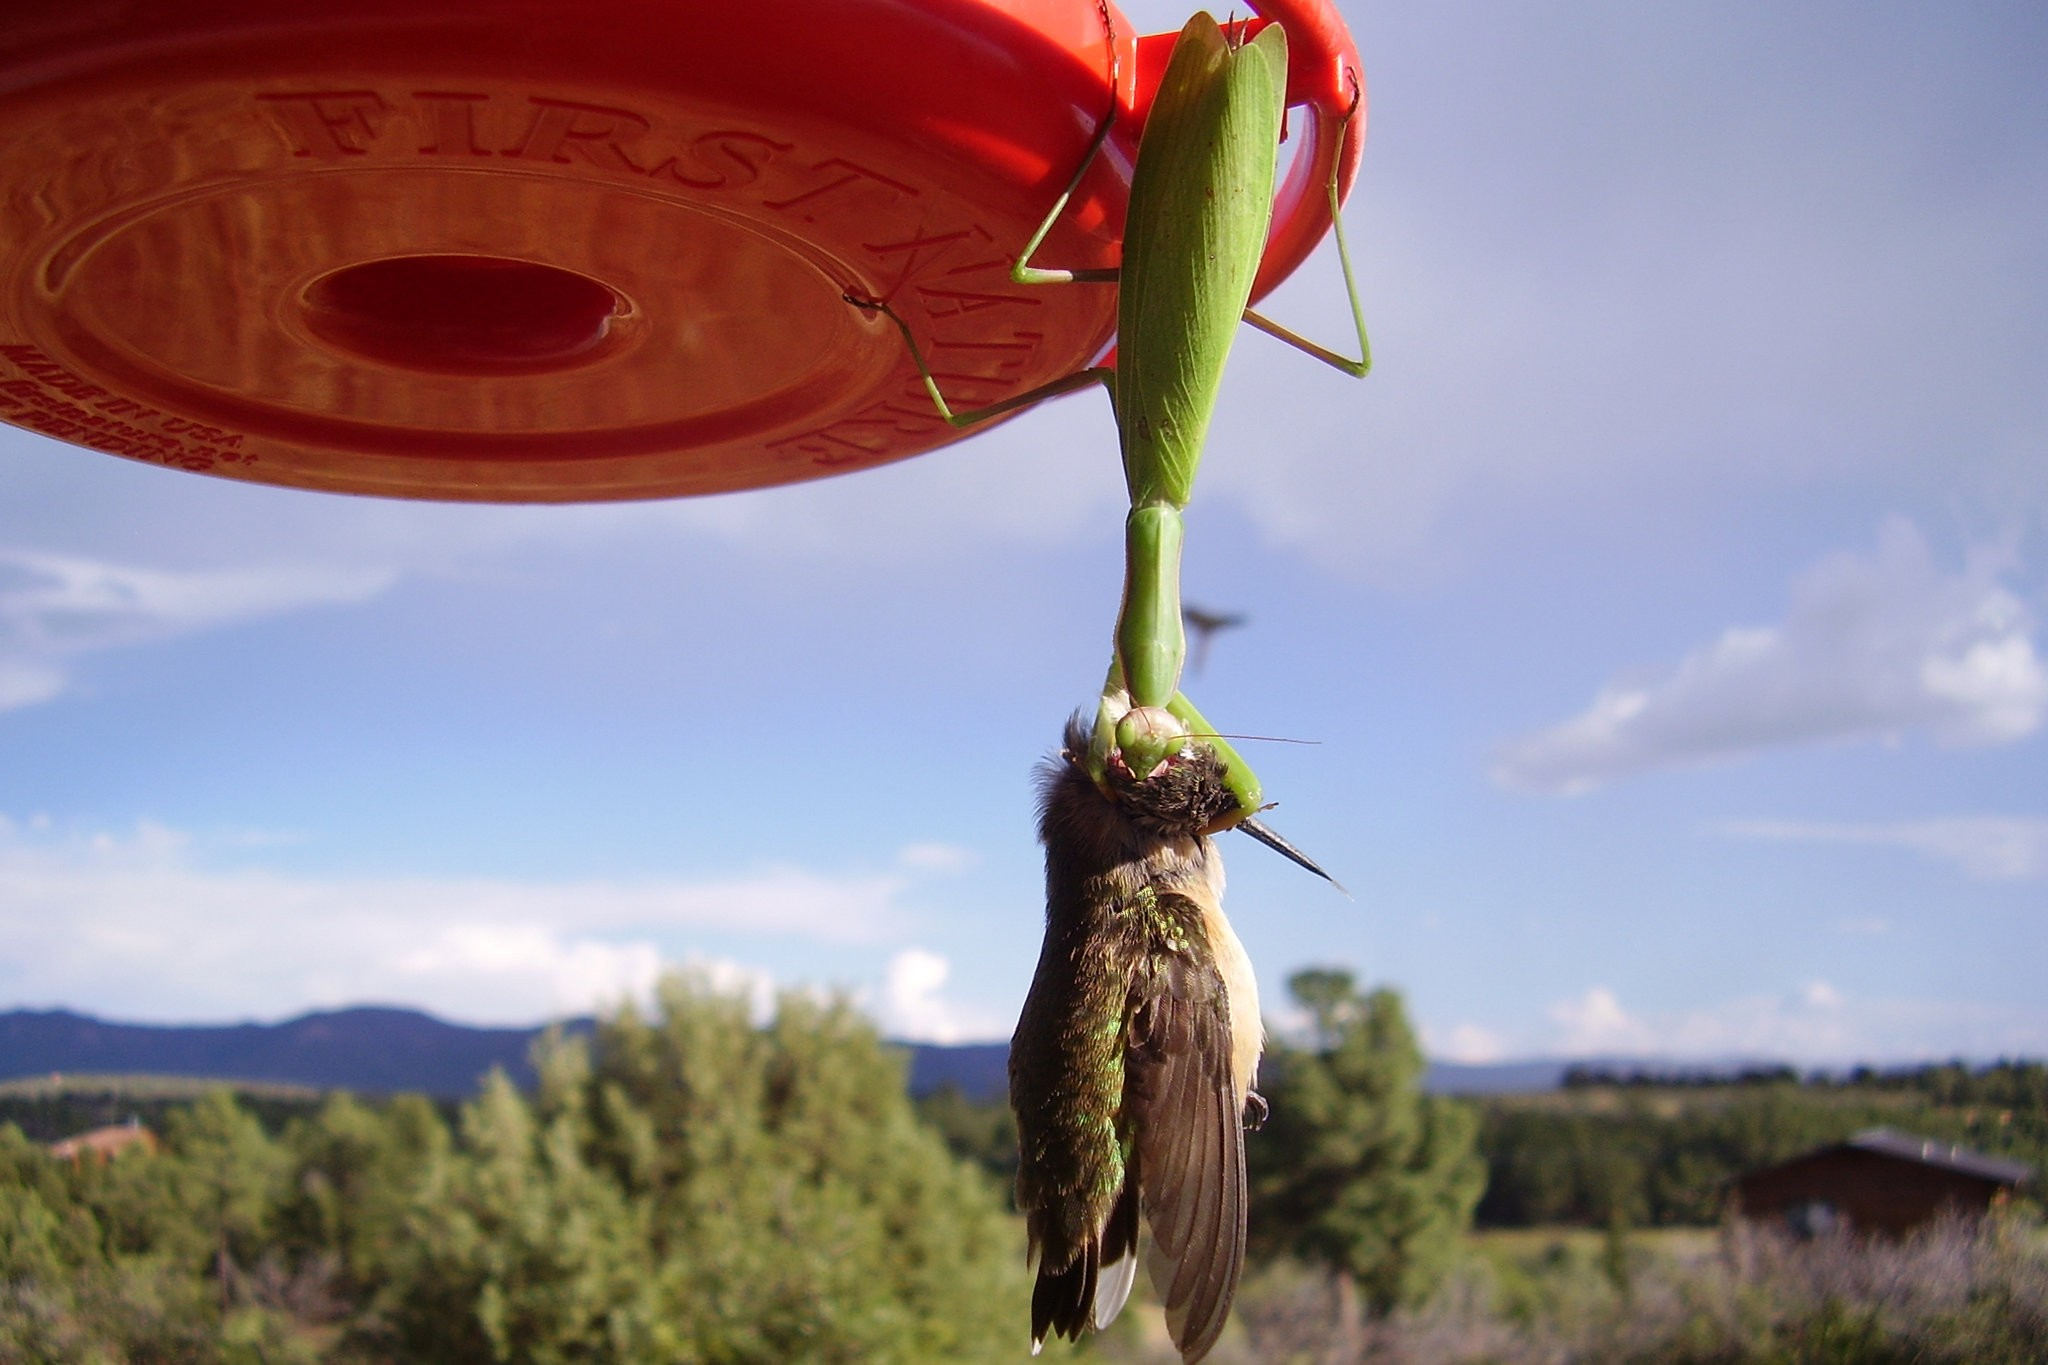 praying mantis eating hummingbird